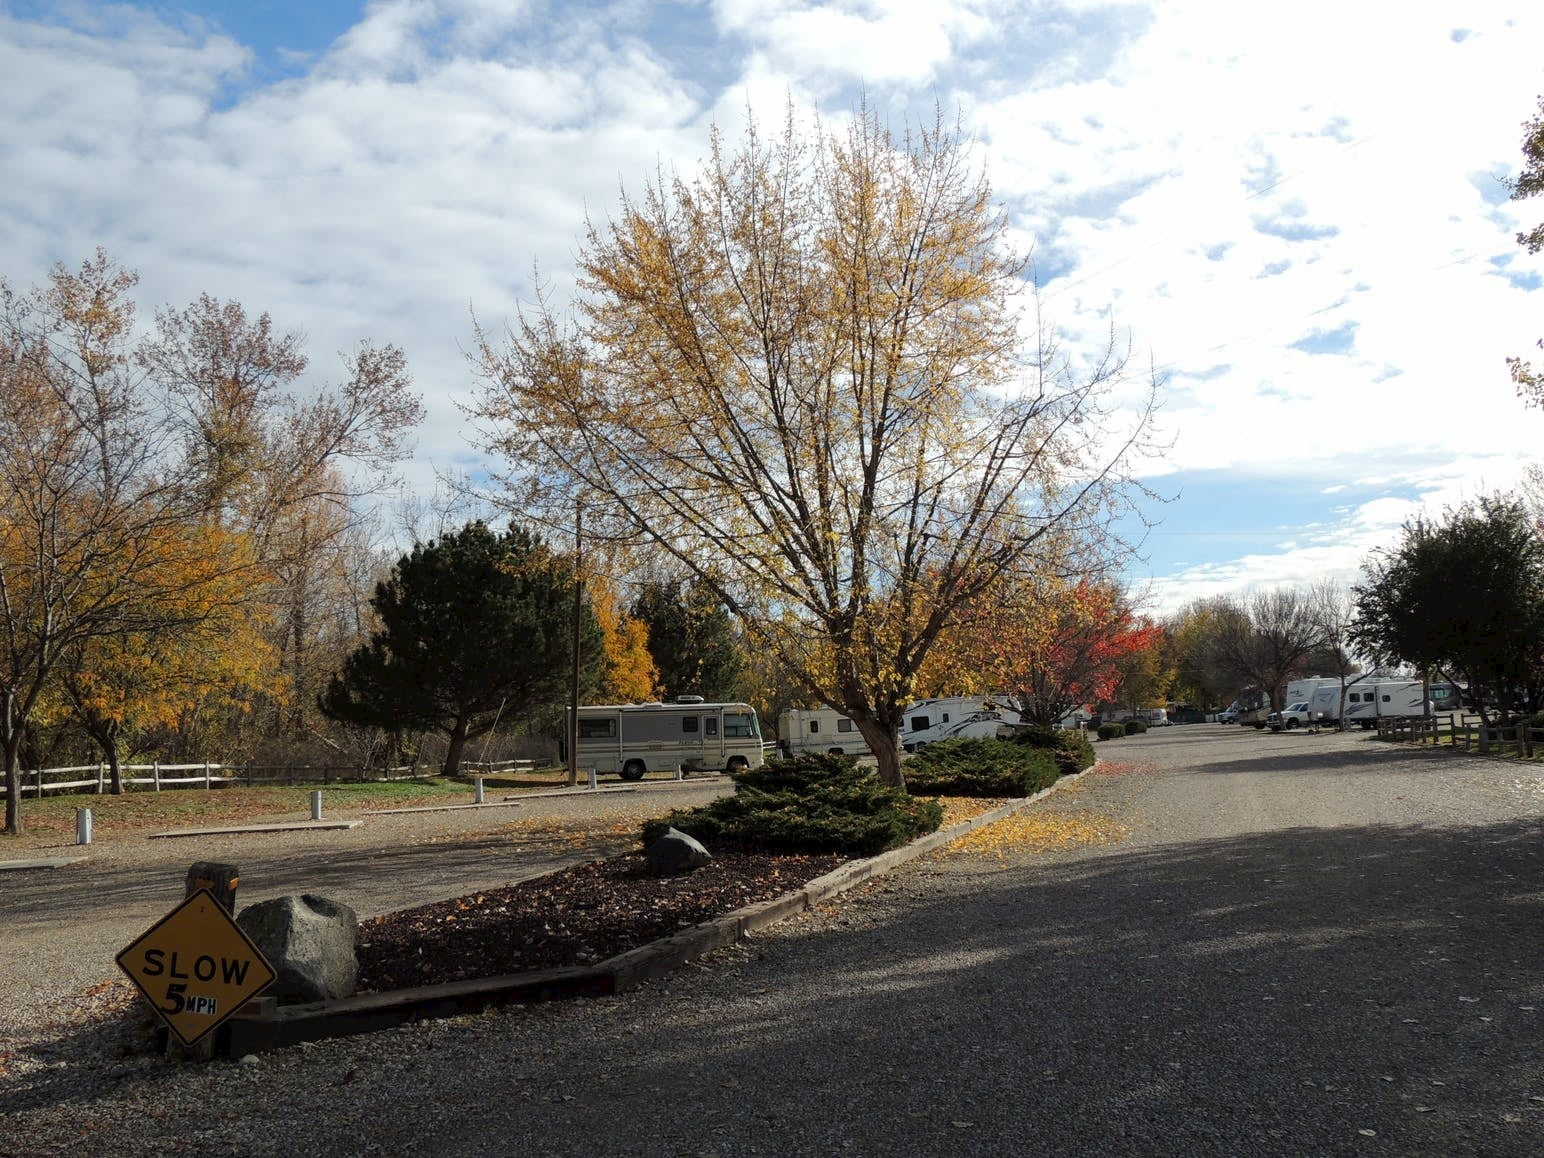 RV Campground surrounded by fall foliage.